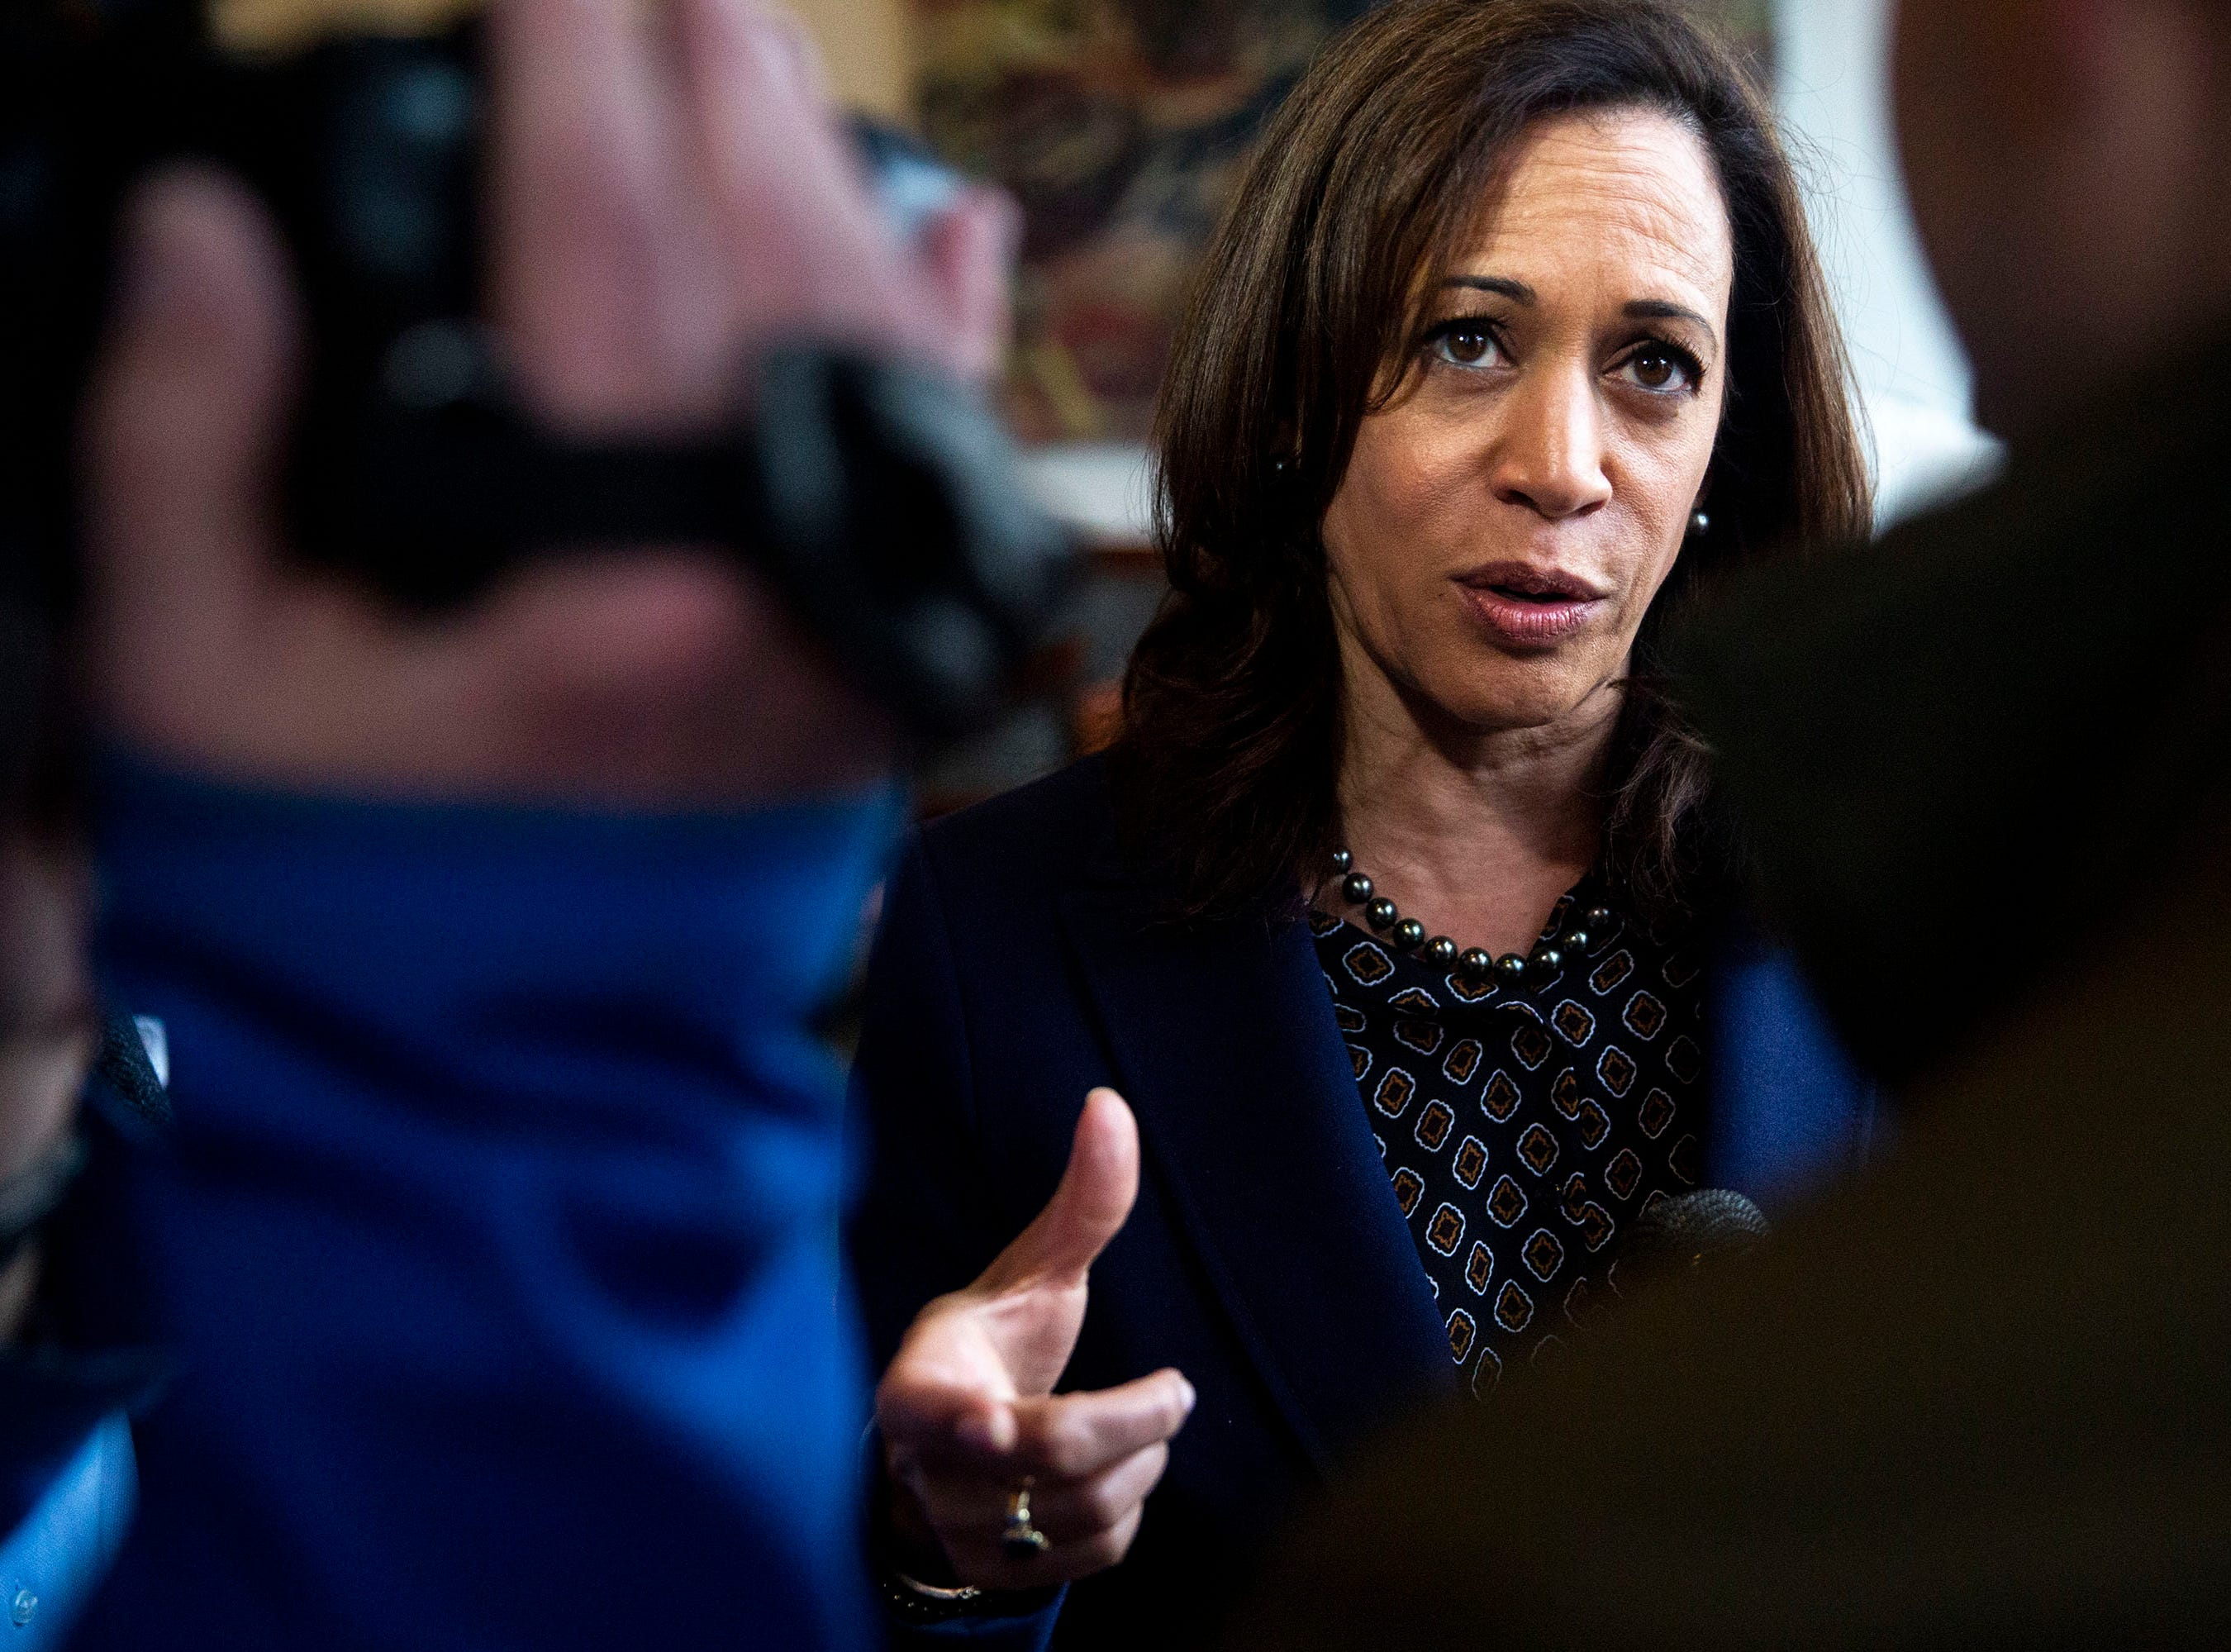 Sen. Kamala Harris, D-CA, answers questions from the press before leaving Mars Cafe on Thursday, April 11, 2019, in Des Moines' Drake neighborhood.